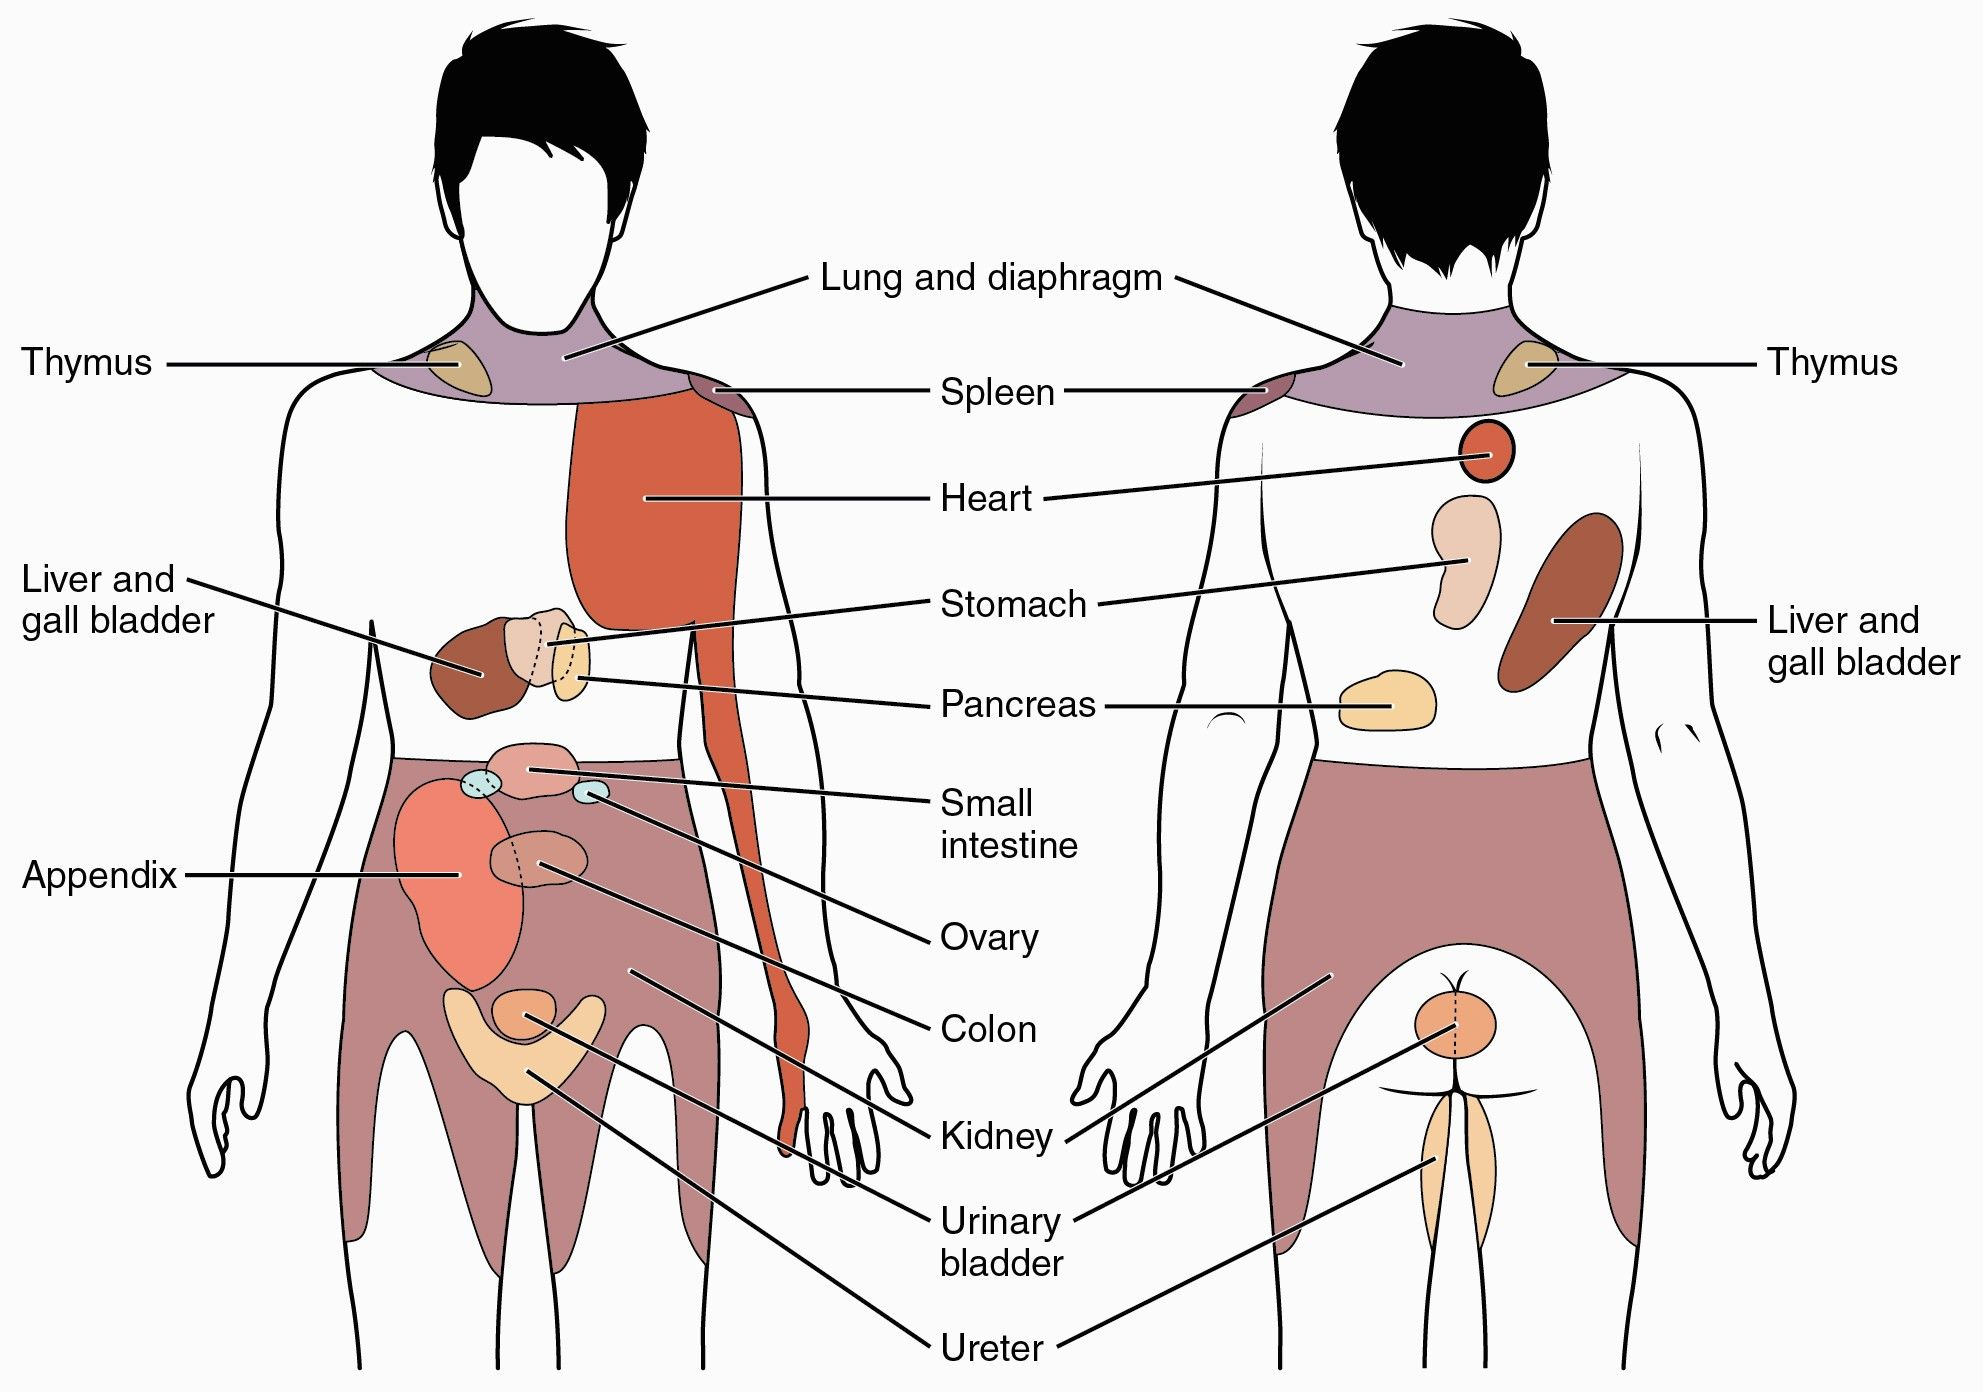 medium resolution of anatomy of body pain liver pain location diagram anatomy organ